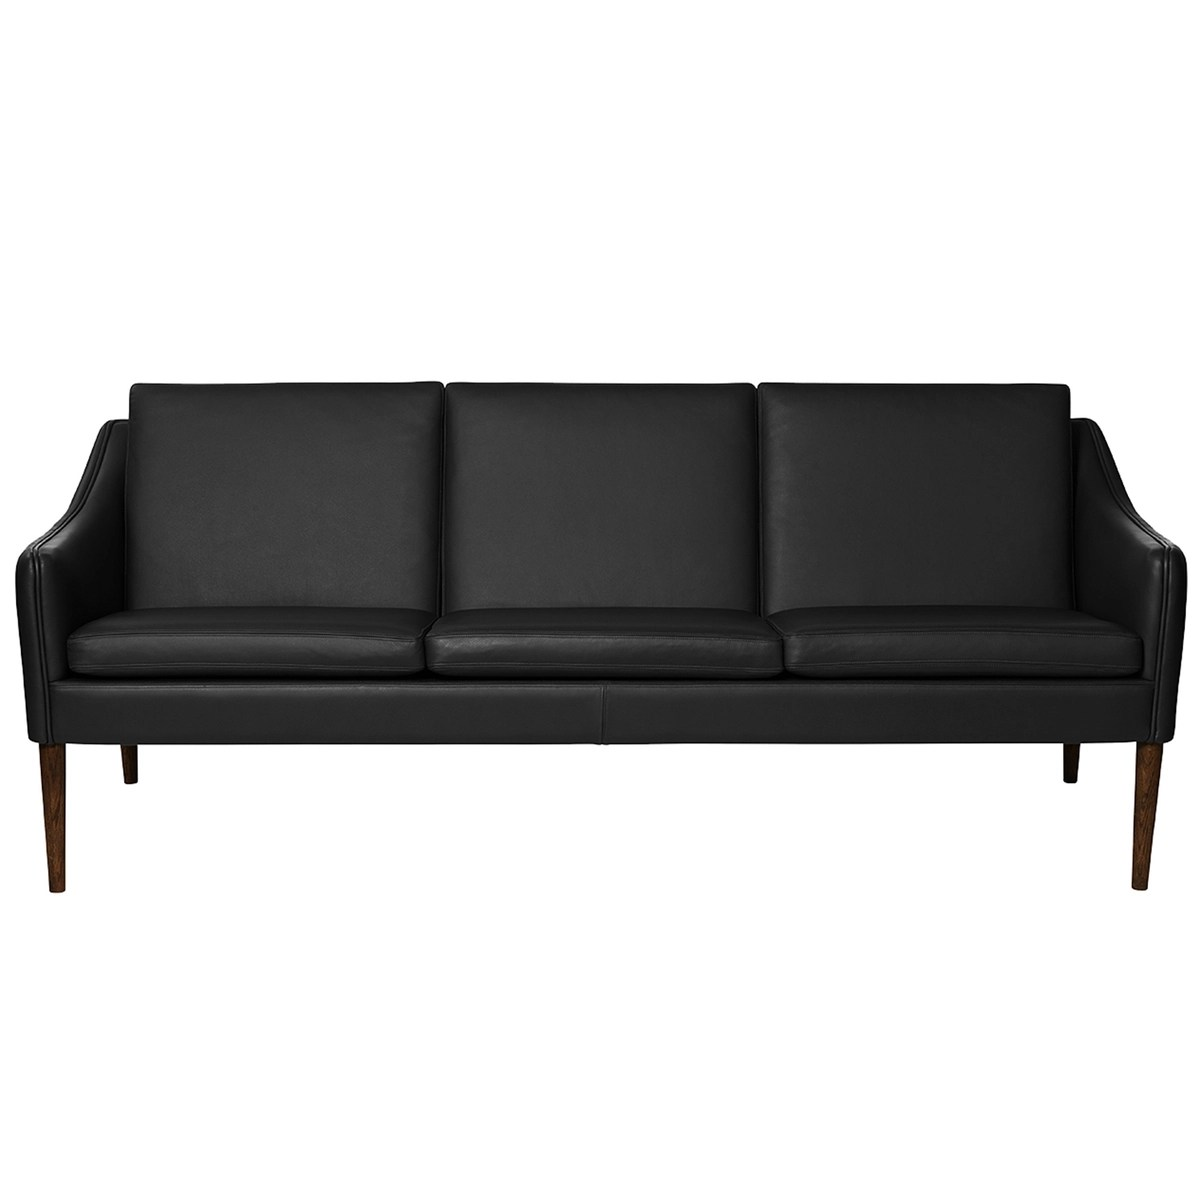 Warm Nordic Mr Olsen Sofa 3 Seater Walnut Black Leather Finnish Design Shop